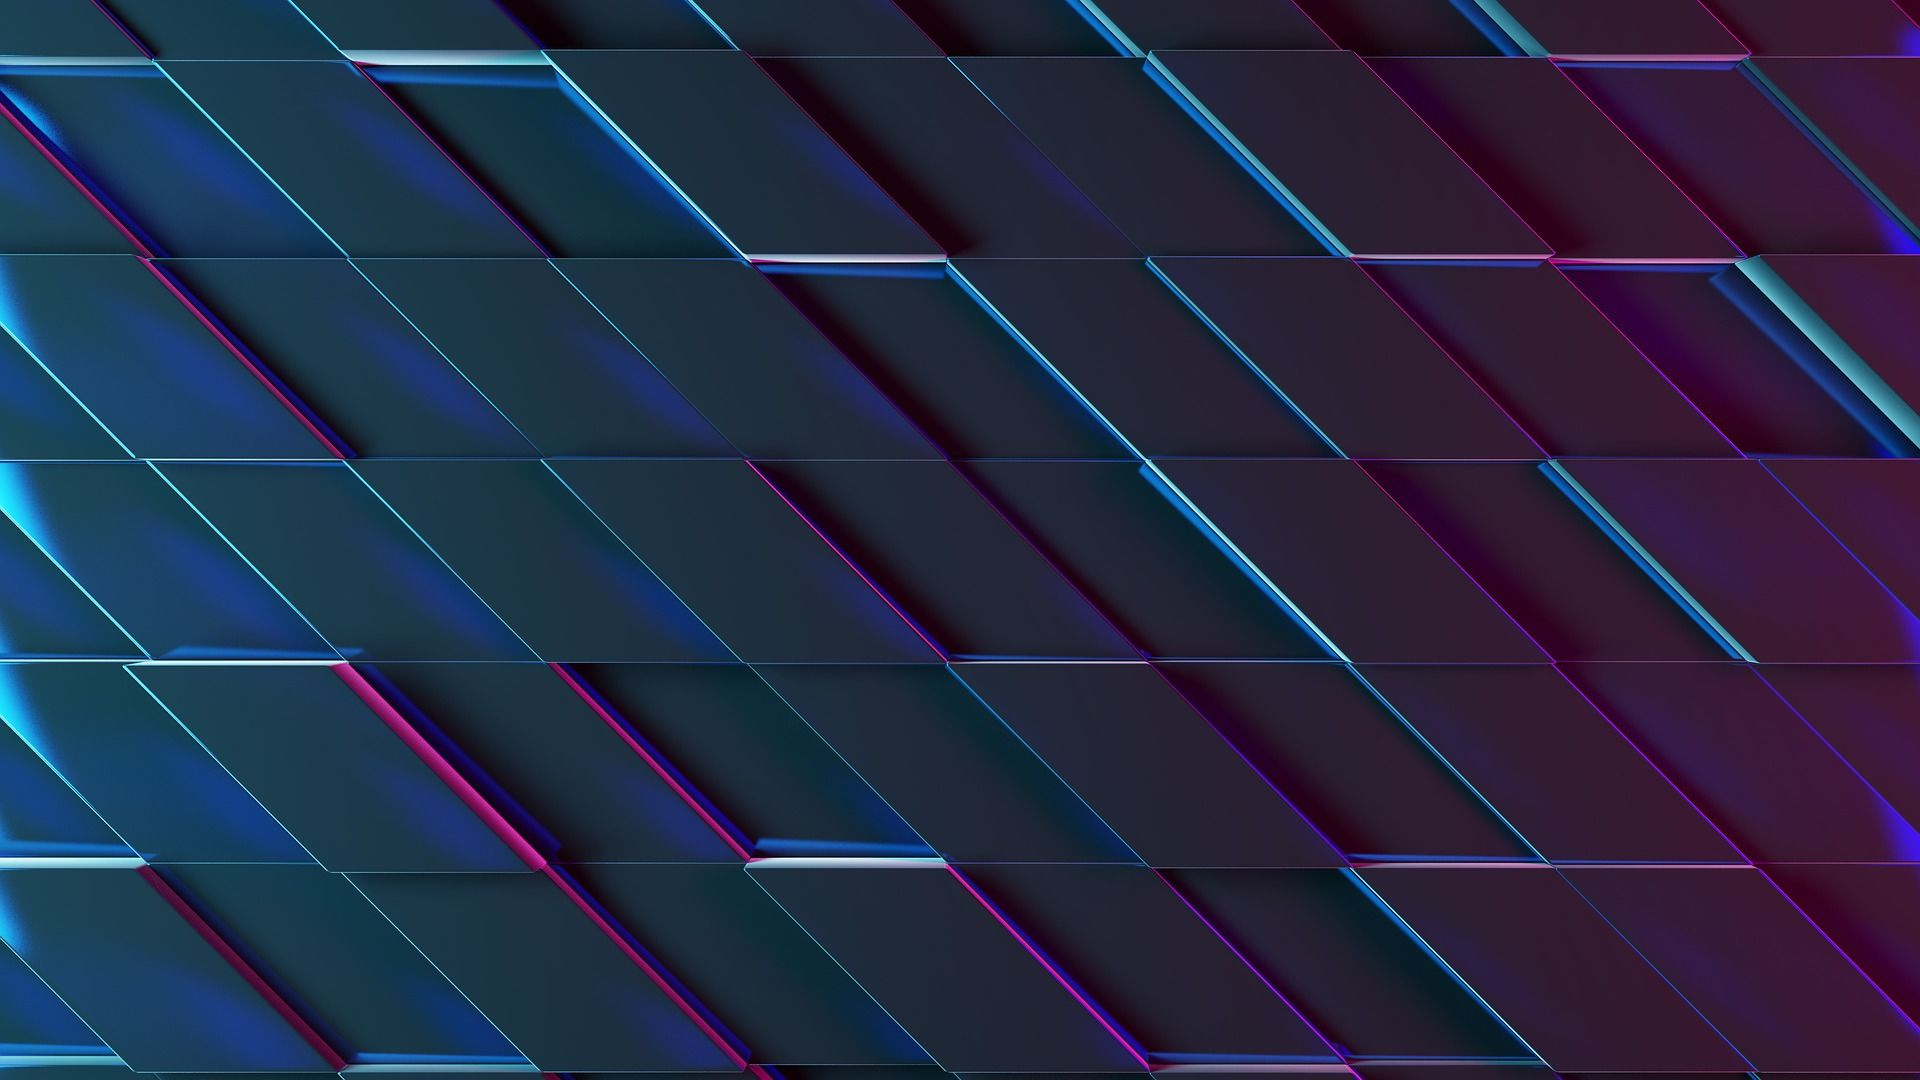 Abstract 3d Neon Shapes Background